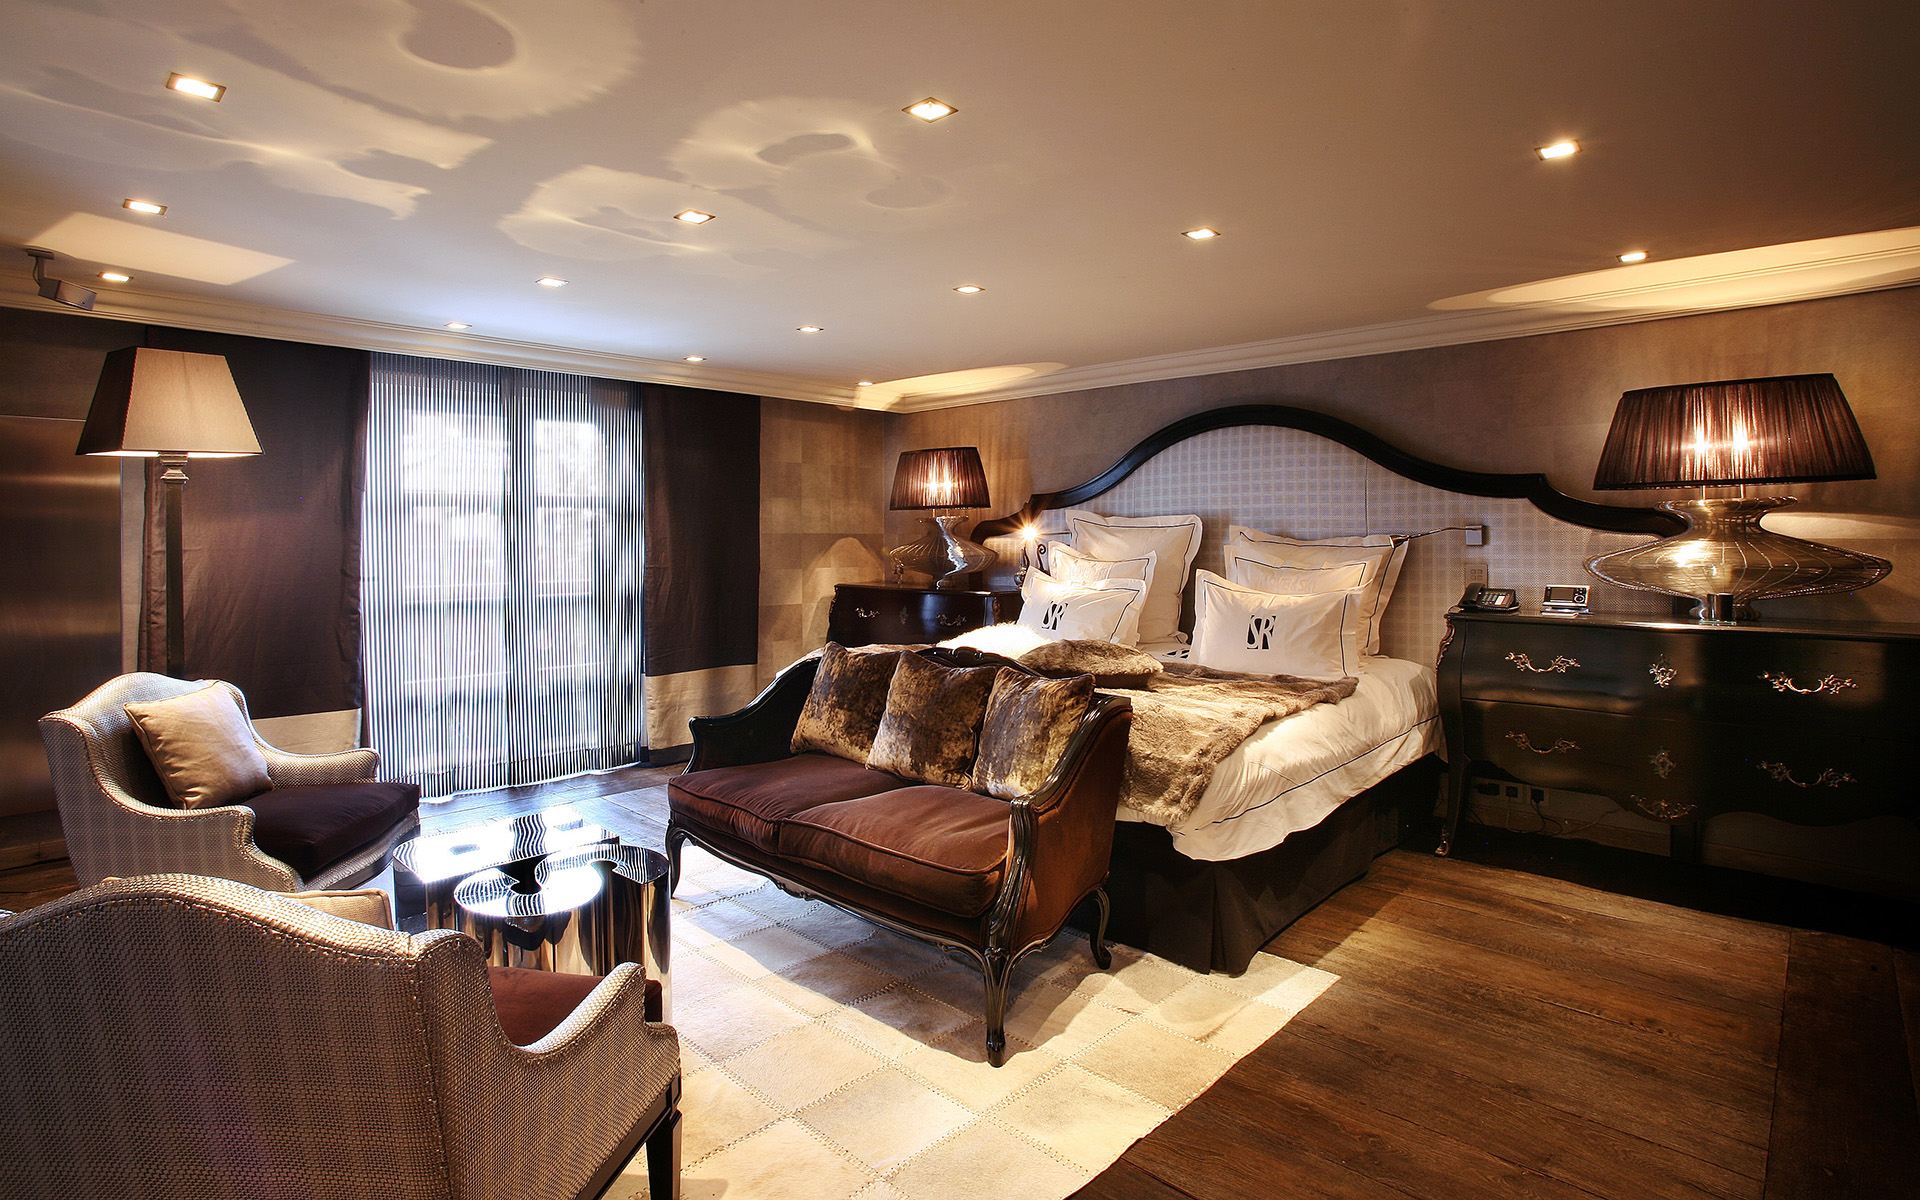 302/Site Maison Tournier/Hotel/saint_roch_courchevel_suite_7.jpg